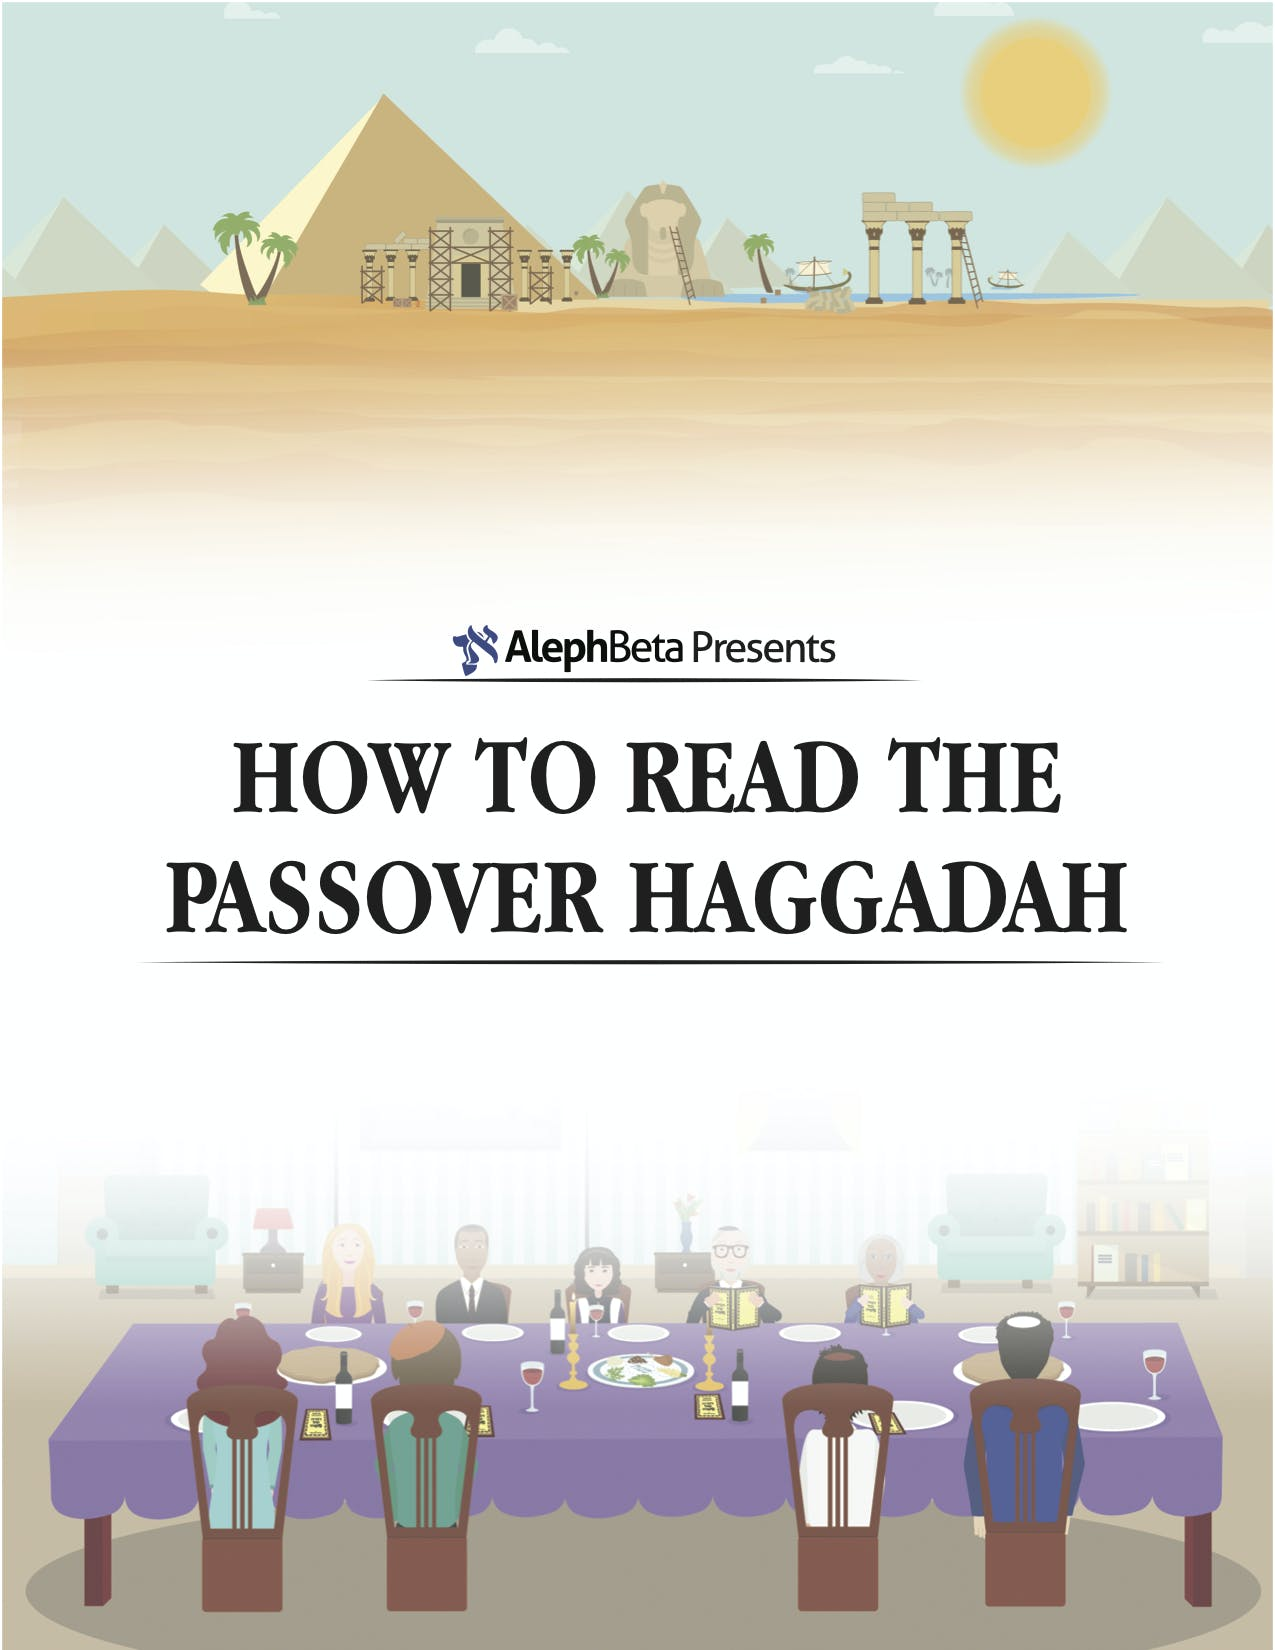 Guide for Seder service